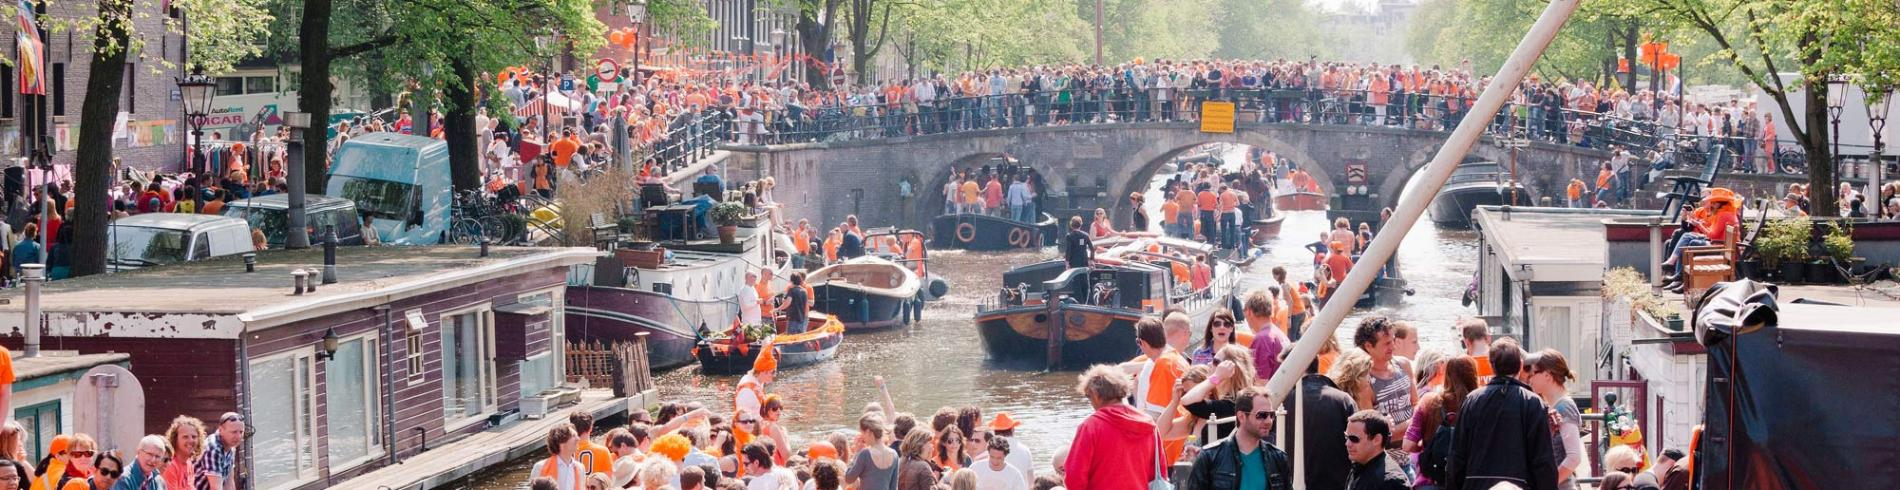 Floating fun on the Prinsengracht